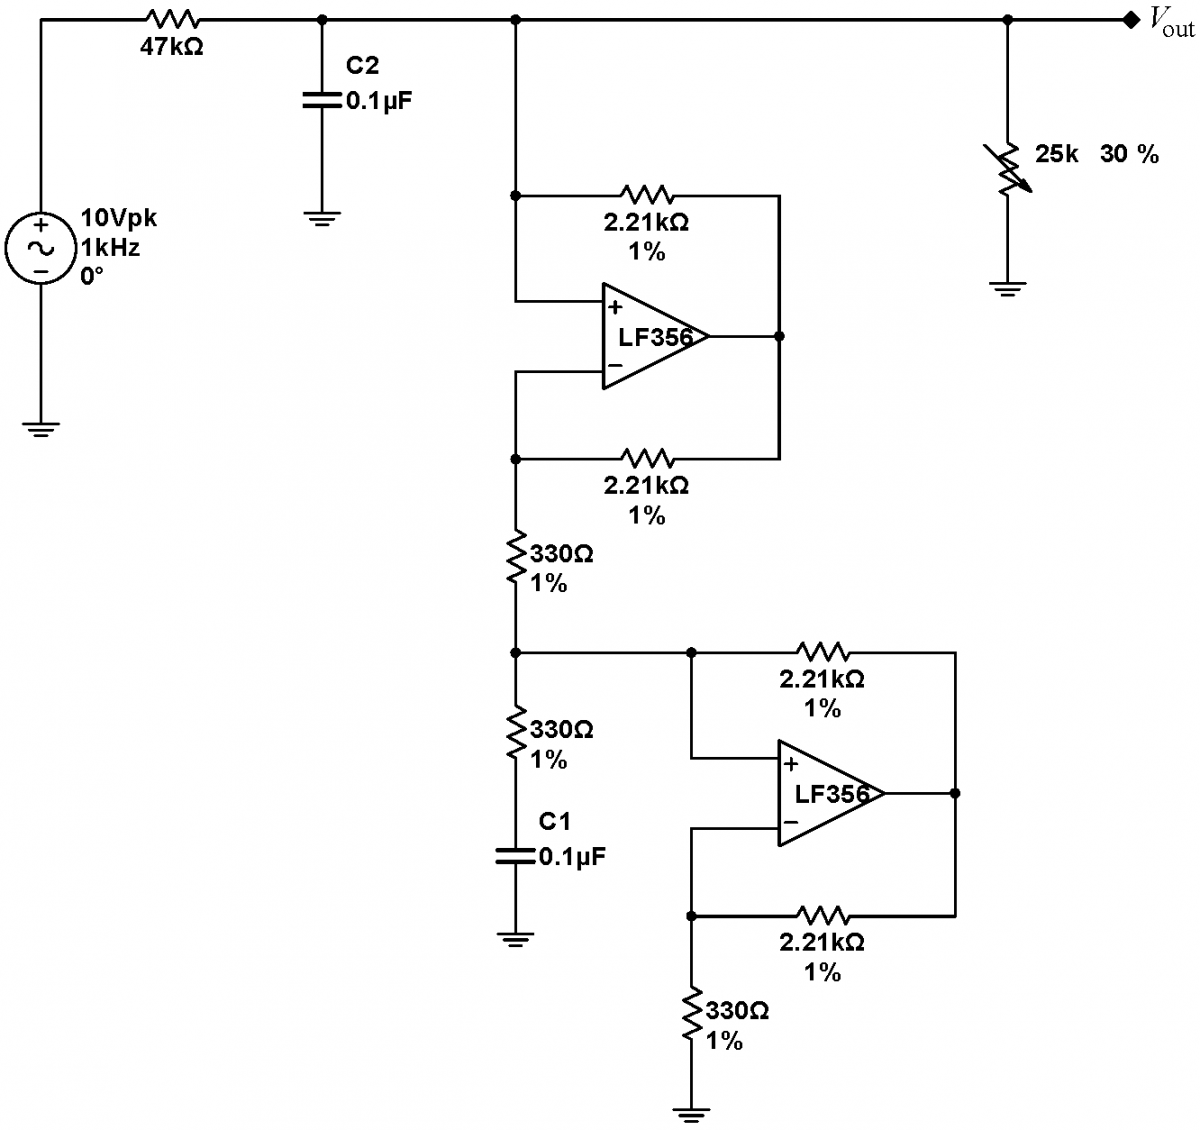 Lab 7 Op Amps Ii Instrumentation Specialpurpose Opamp Circuits Electronics Questions And Answers Gyrator